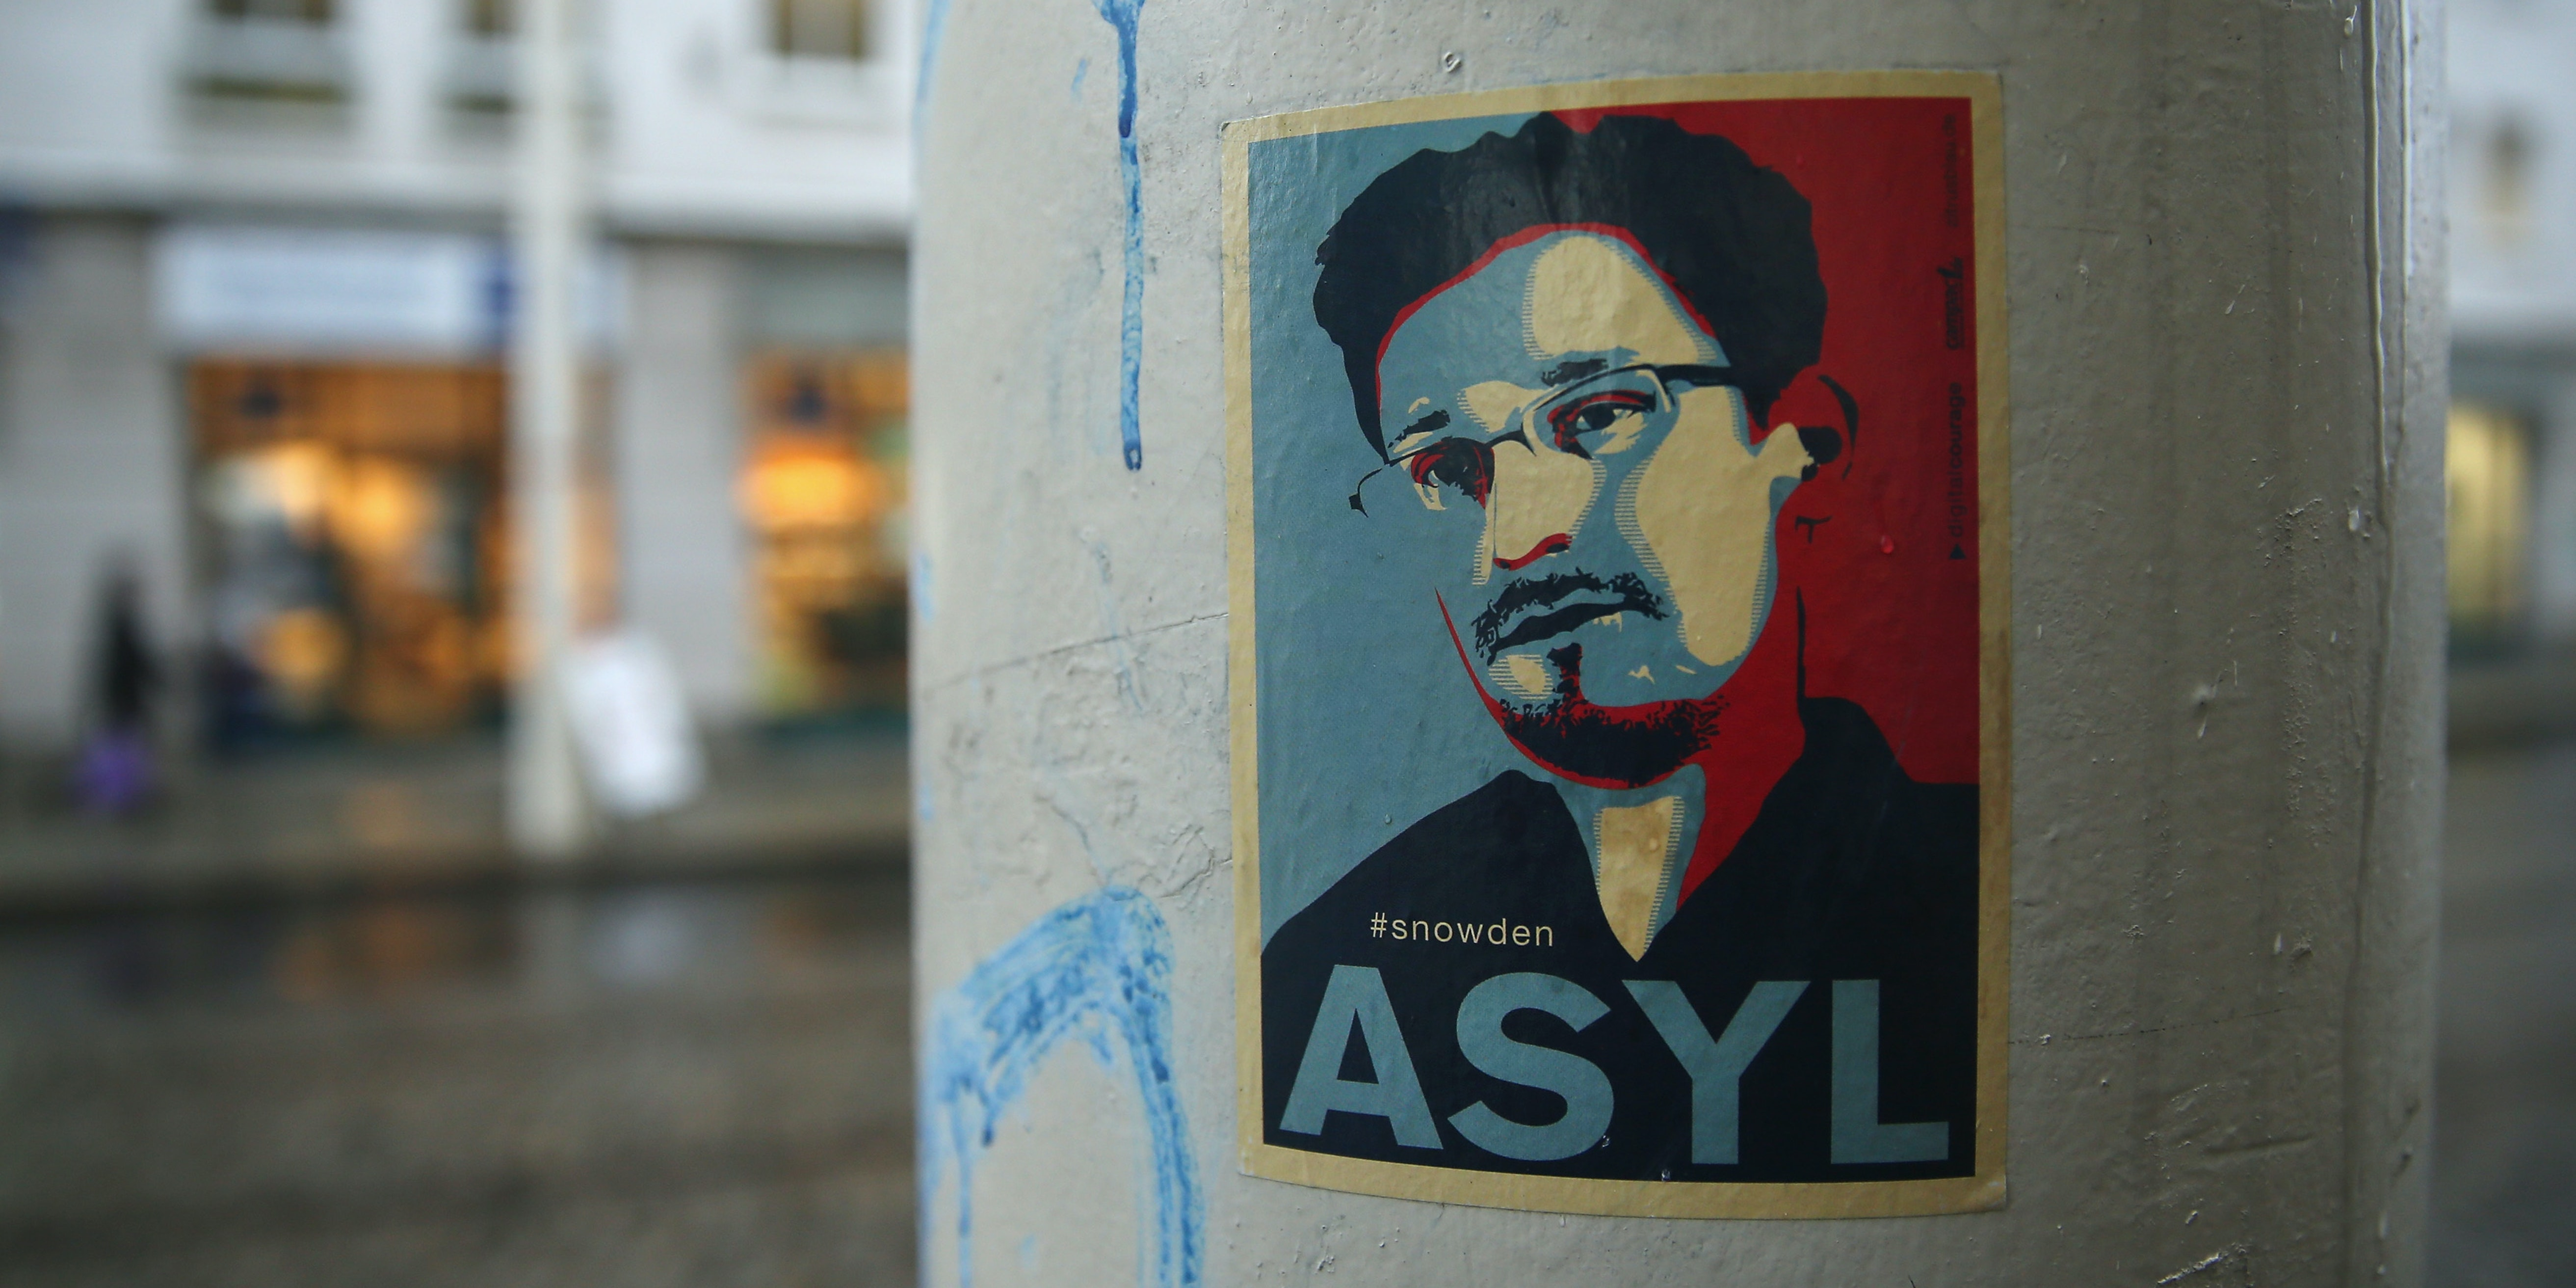 DRESDEN, GERMANY - JANUARY 05:  A sticker demanding asylum for whistleblower and former NSA worker Edward Snowden hangs stuck to a lamppost on January 5, 2015 in Dresden, Germany. Many Germans favour granting Snowden asylum in Germany following reports that the NSA has conducted extensive eavesrodpping operations in Germany and even listened in on the mobile phone of German Chancellor Angela Merkel.  (Photo by Sean Gallup/Getty Images)